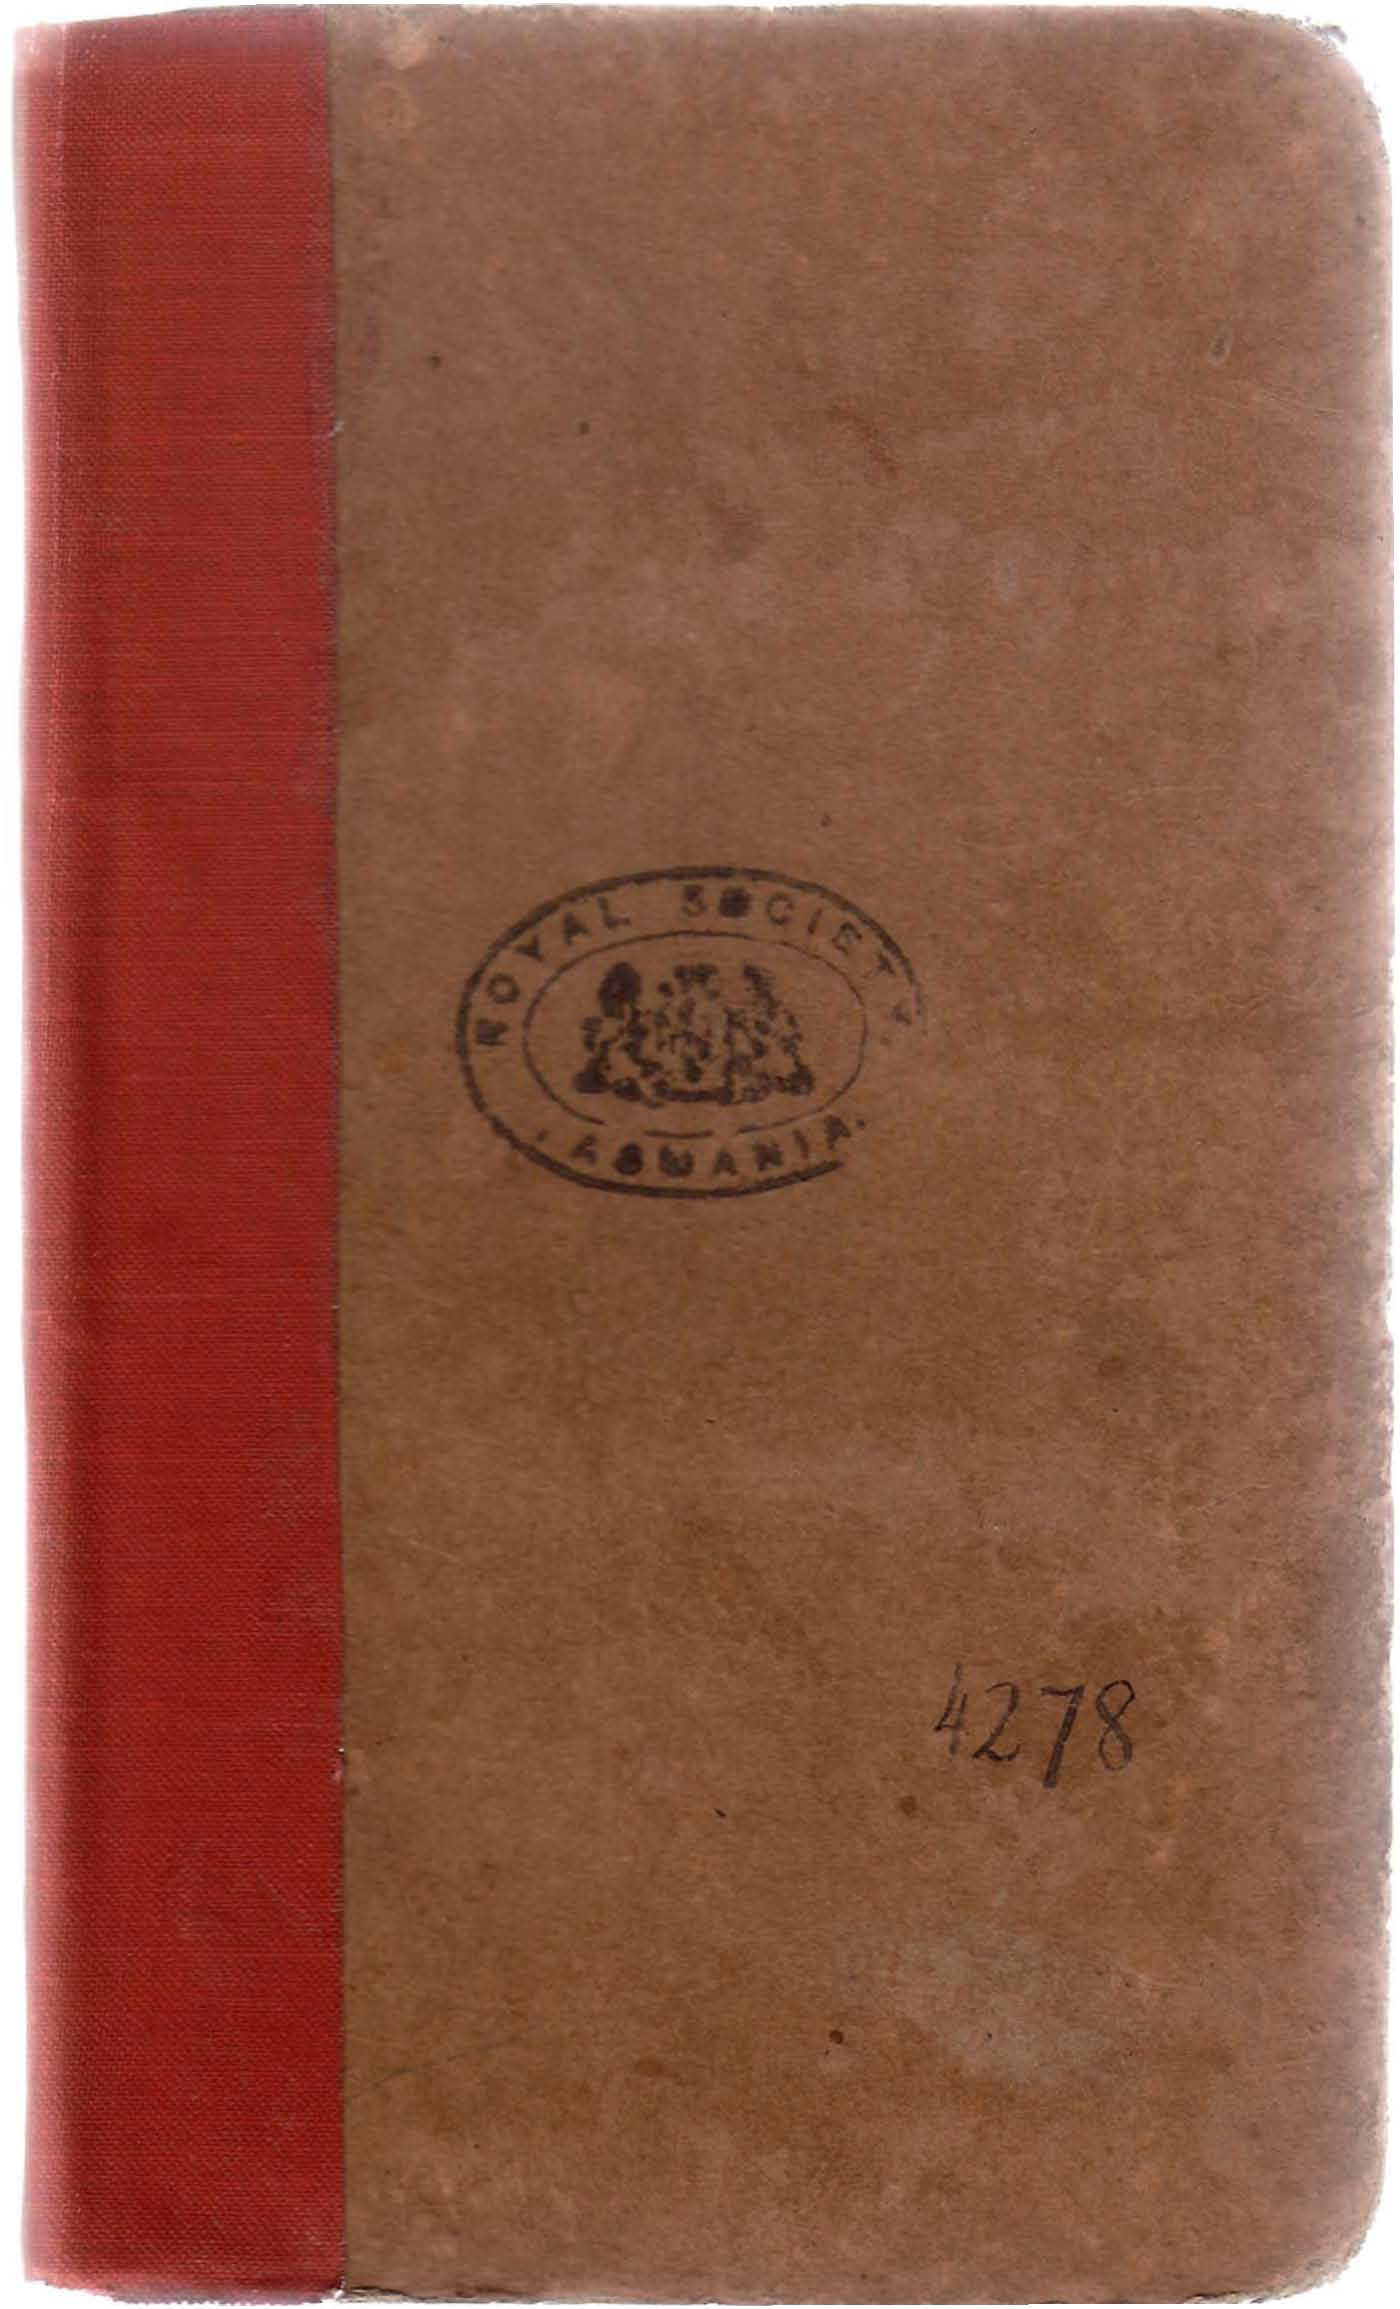 AN ACCOUNT OF A VOYAGE TO NEW SOUTH WALES and THE HISTORY OF NEW SOUTH WALES.